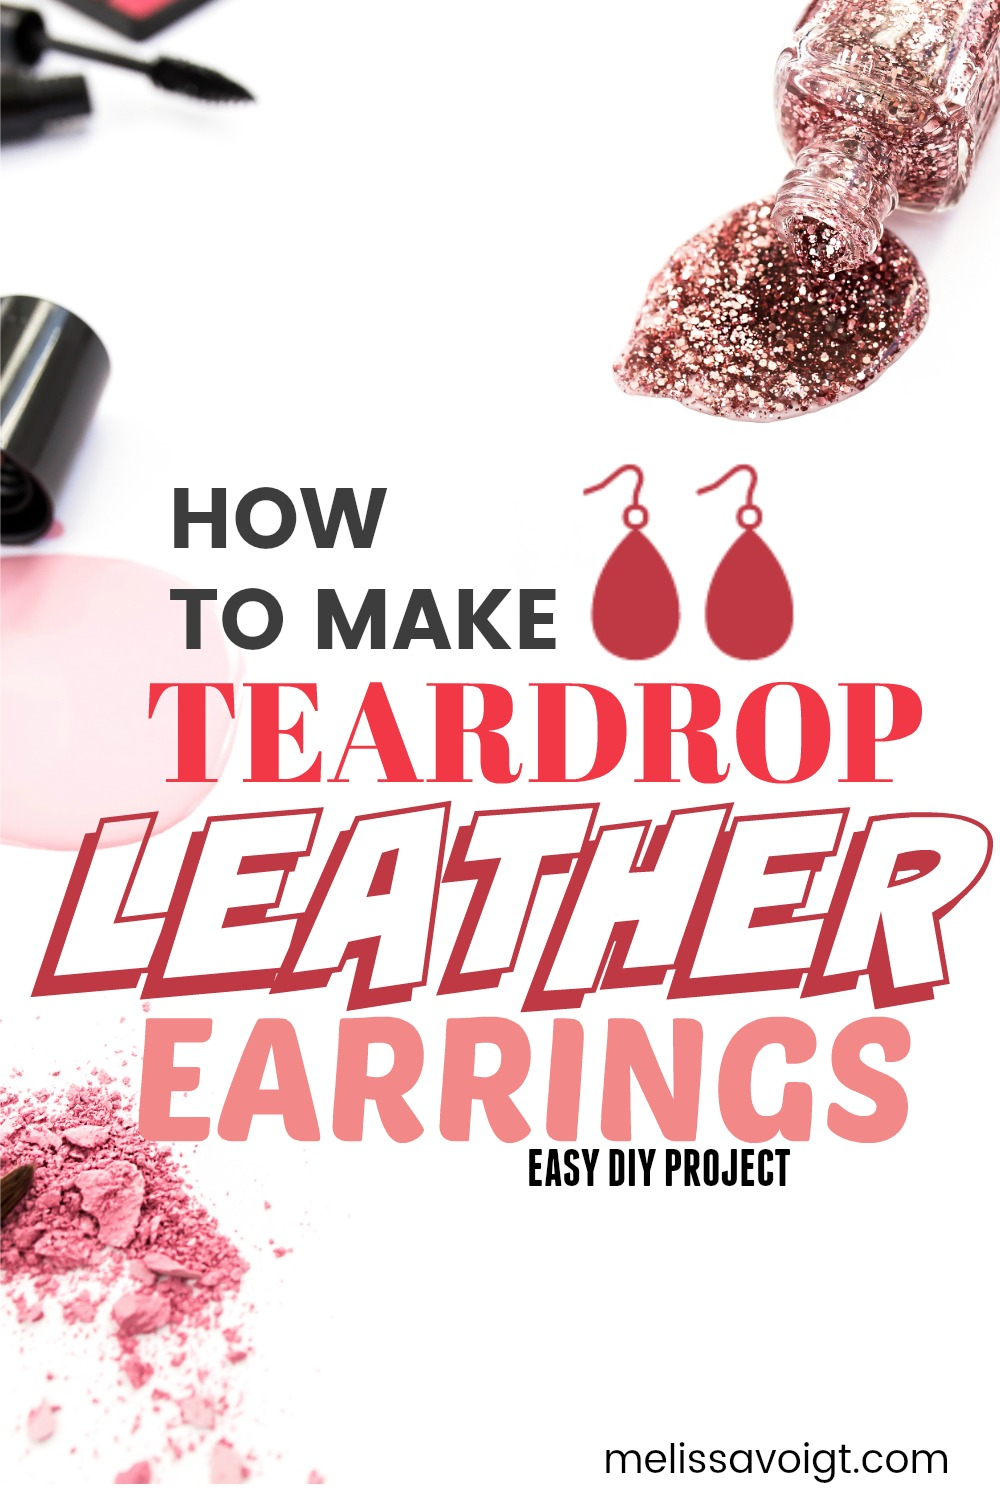 how to make teardrop earrings.jpg